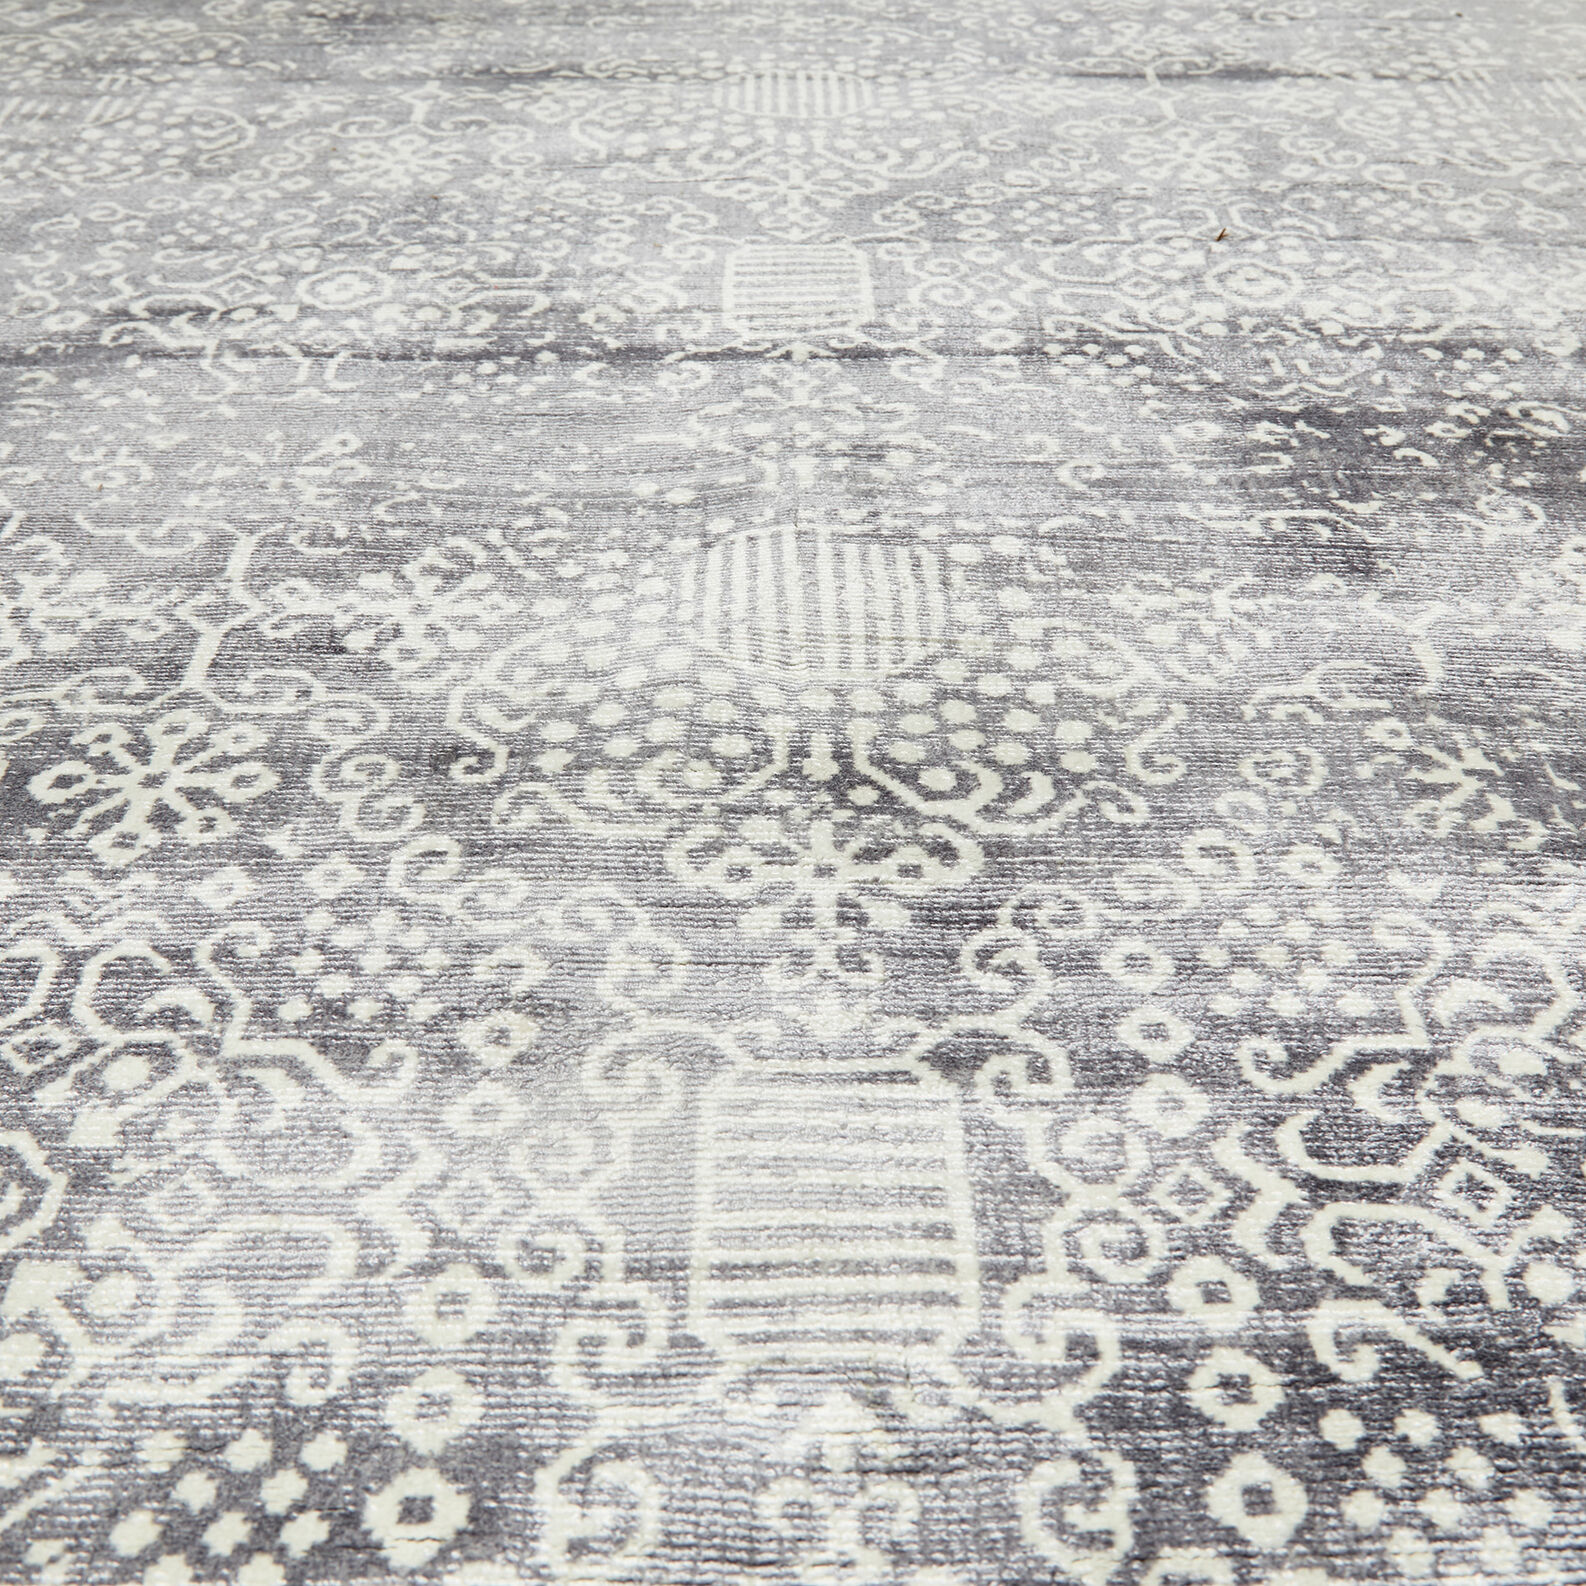 Rug with ornamental motif